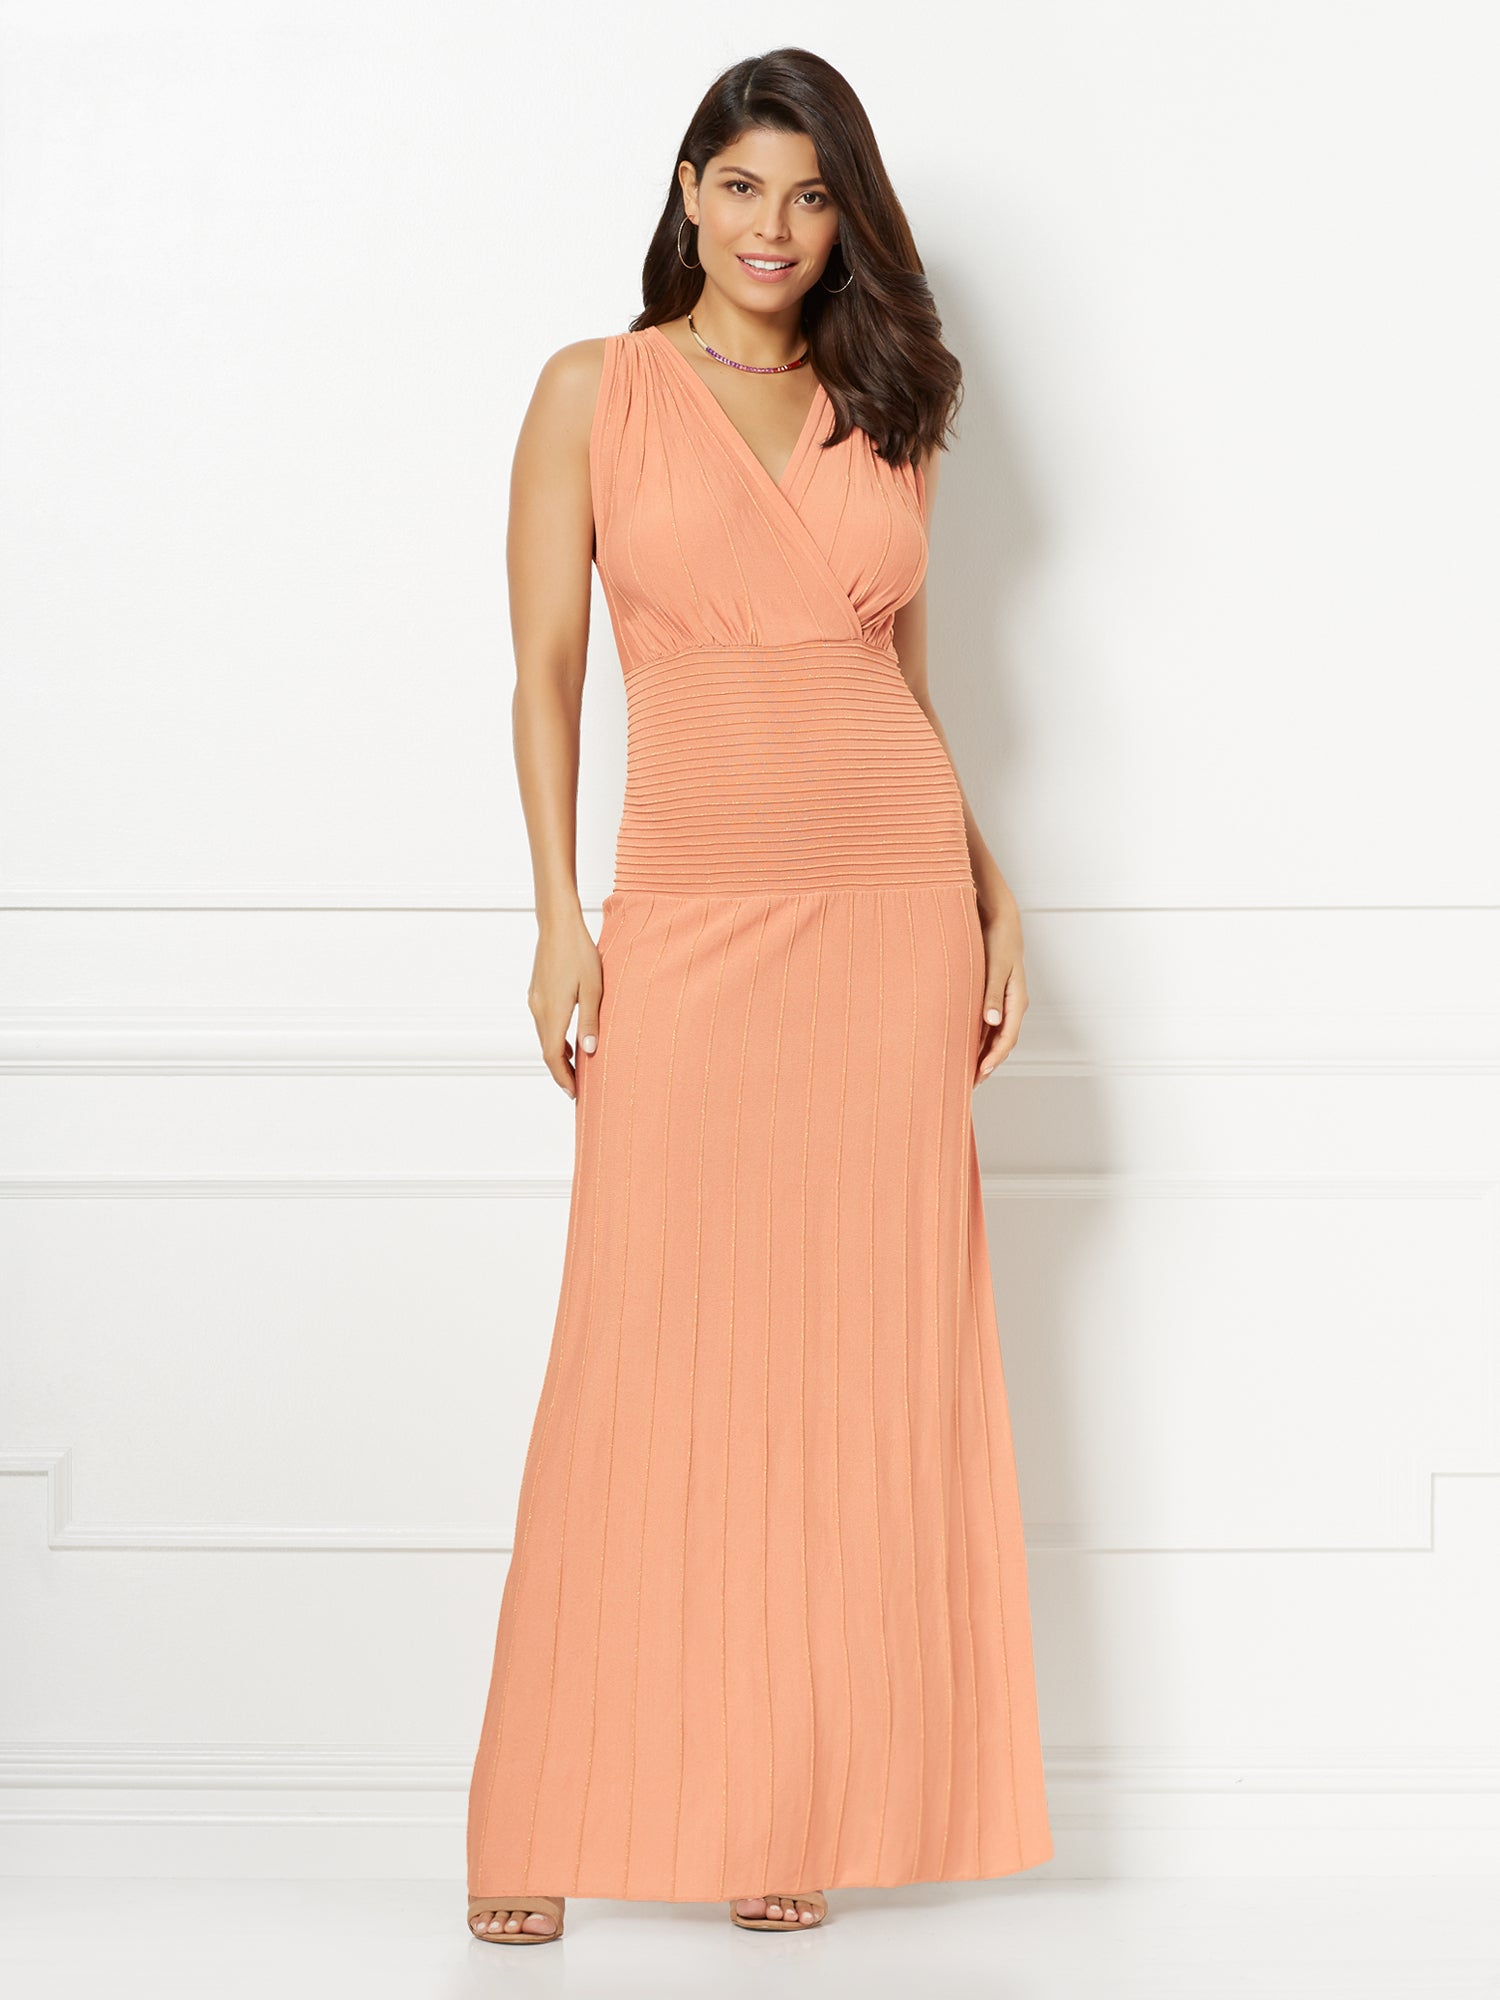 New York Company Eva Mendes Collection Laurene Maxi Dress In